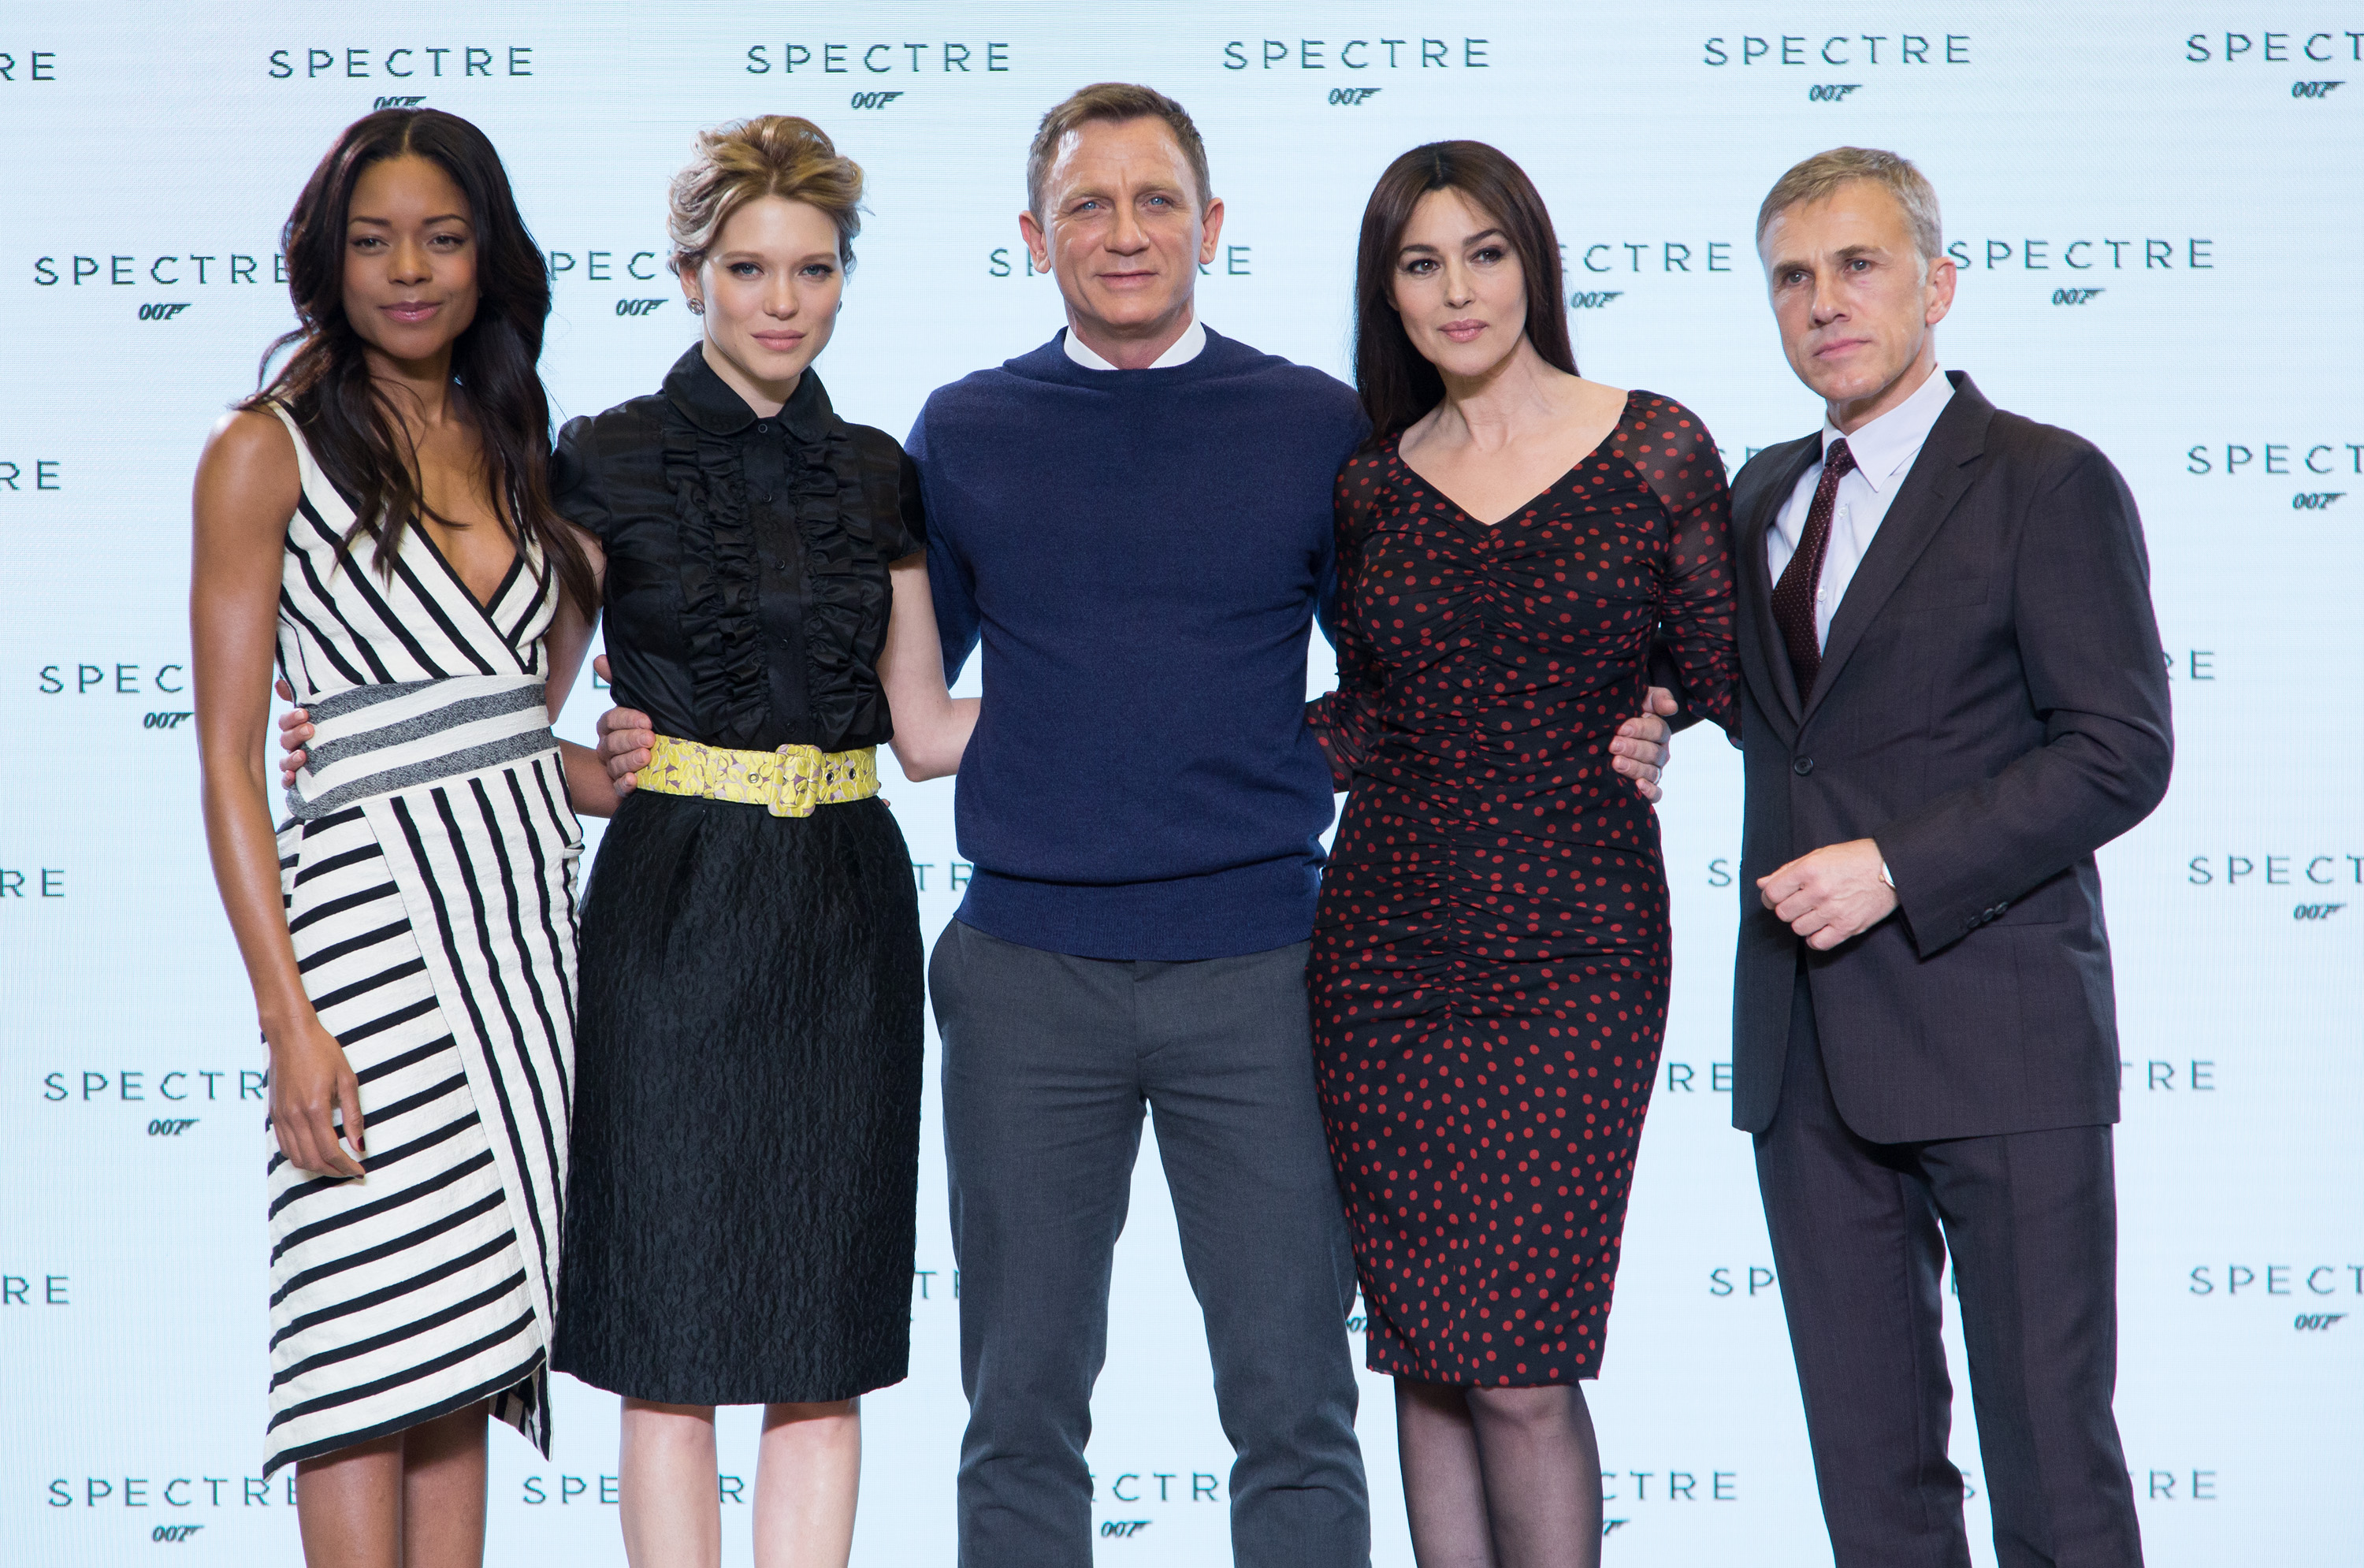 Spectre press conference - Craig, Bellucci, Seydoux, Waltz, Harris.jpg